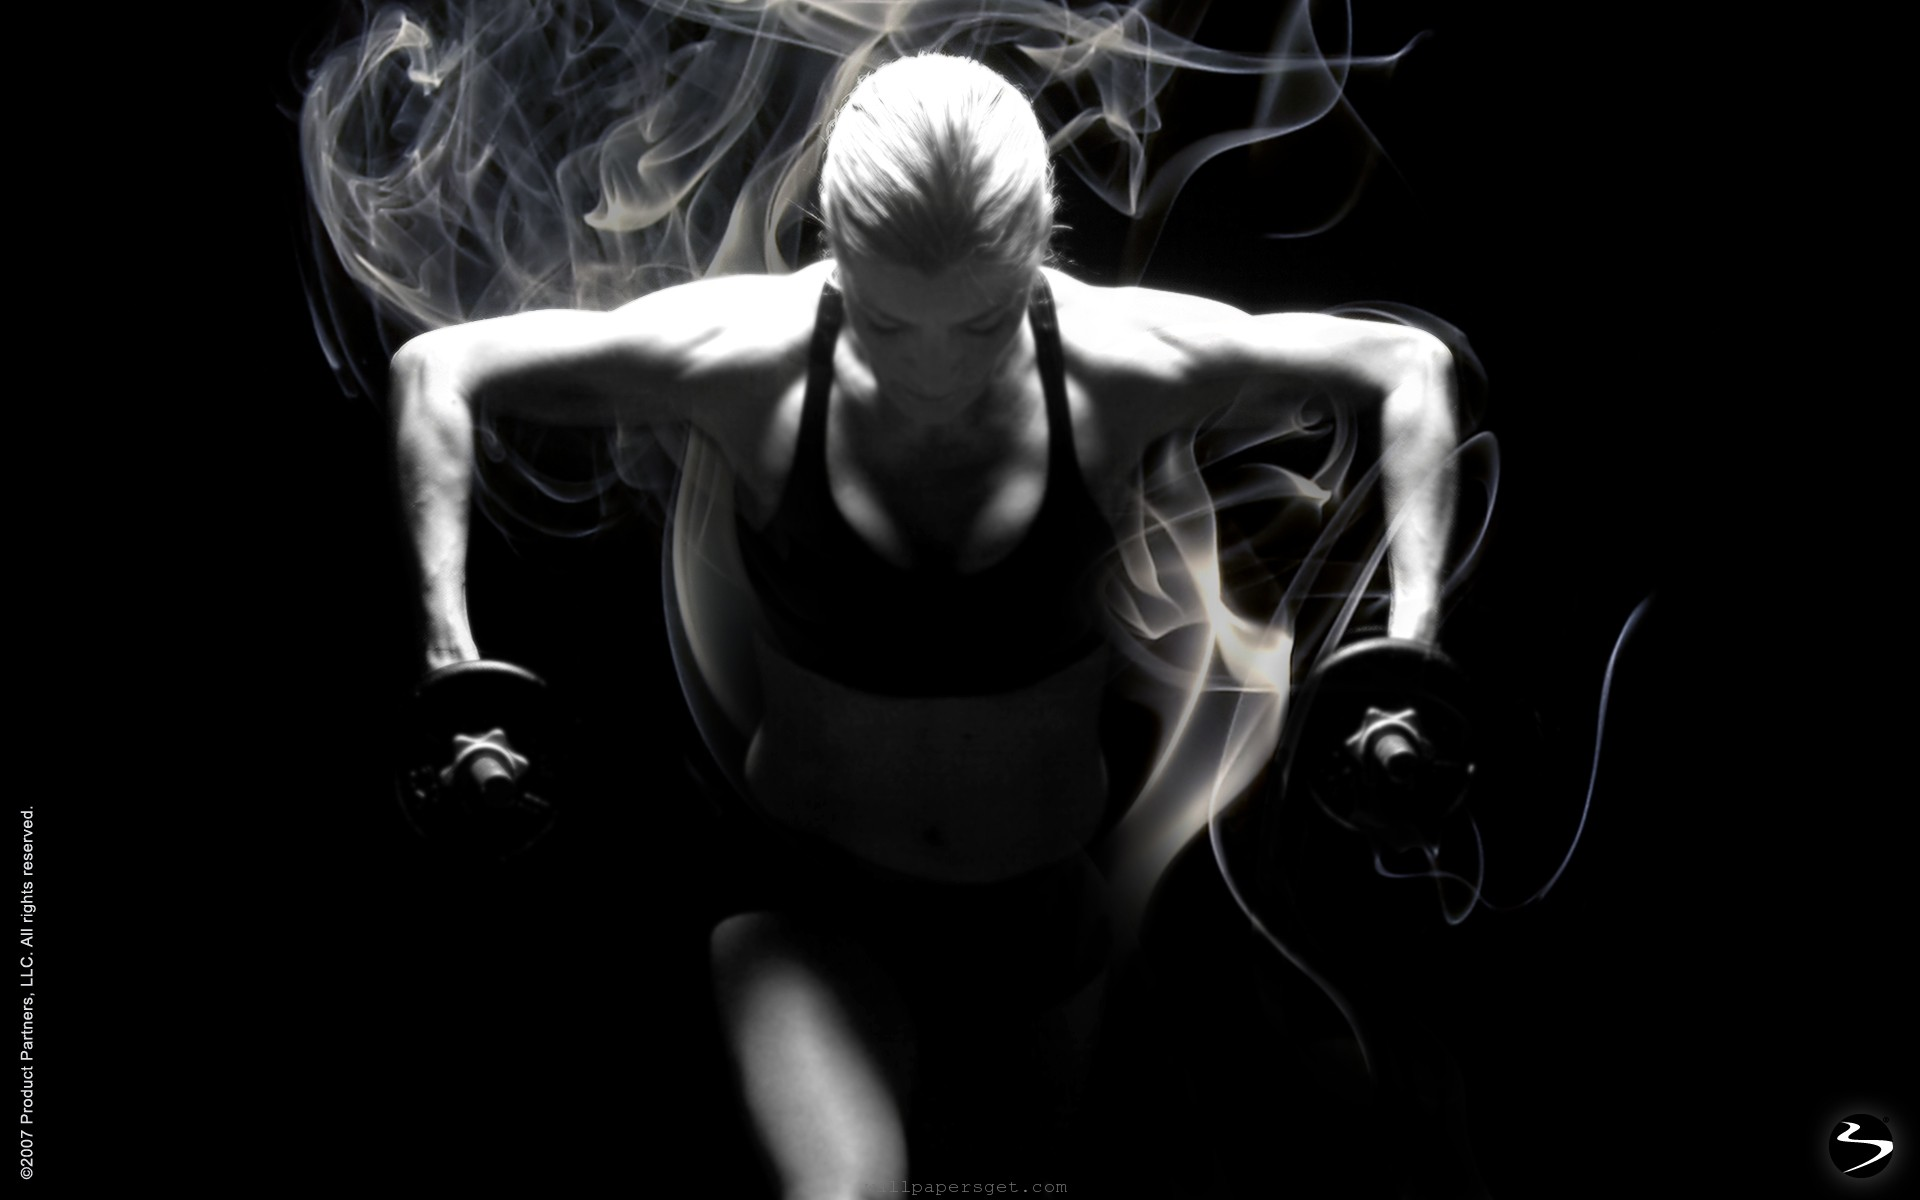 Fitnessstudio wallpaper  Fitness HD wallpaper | 1920x1200 | #33578